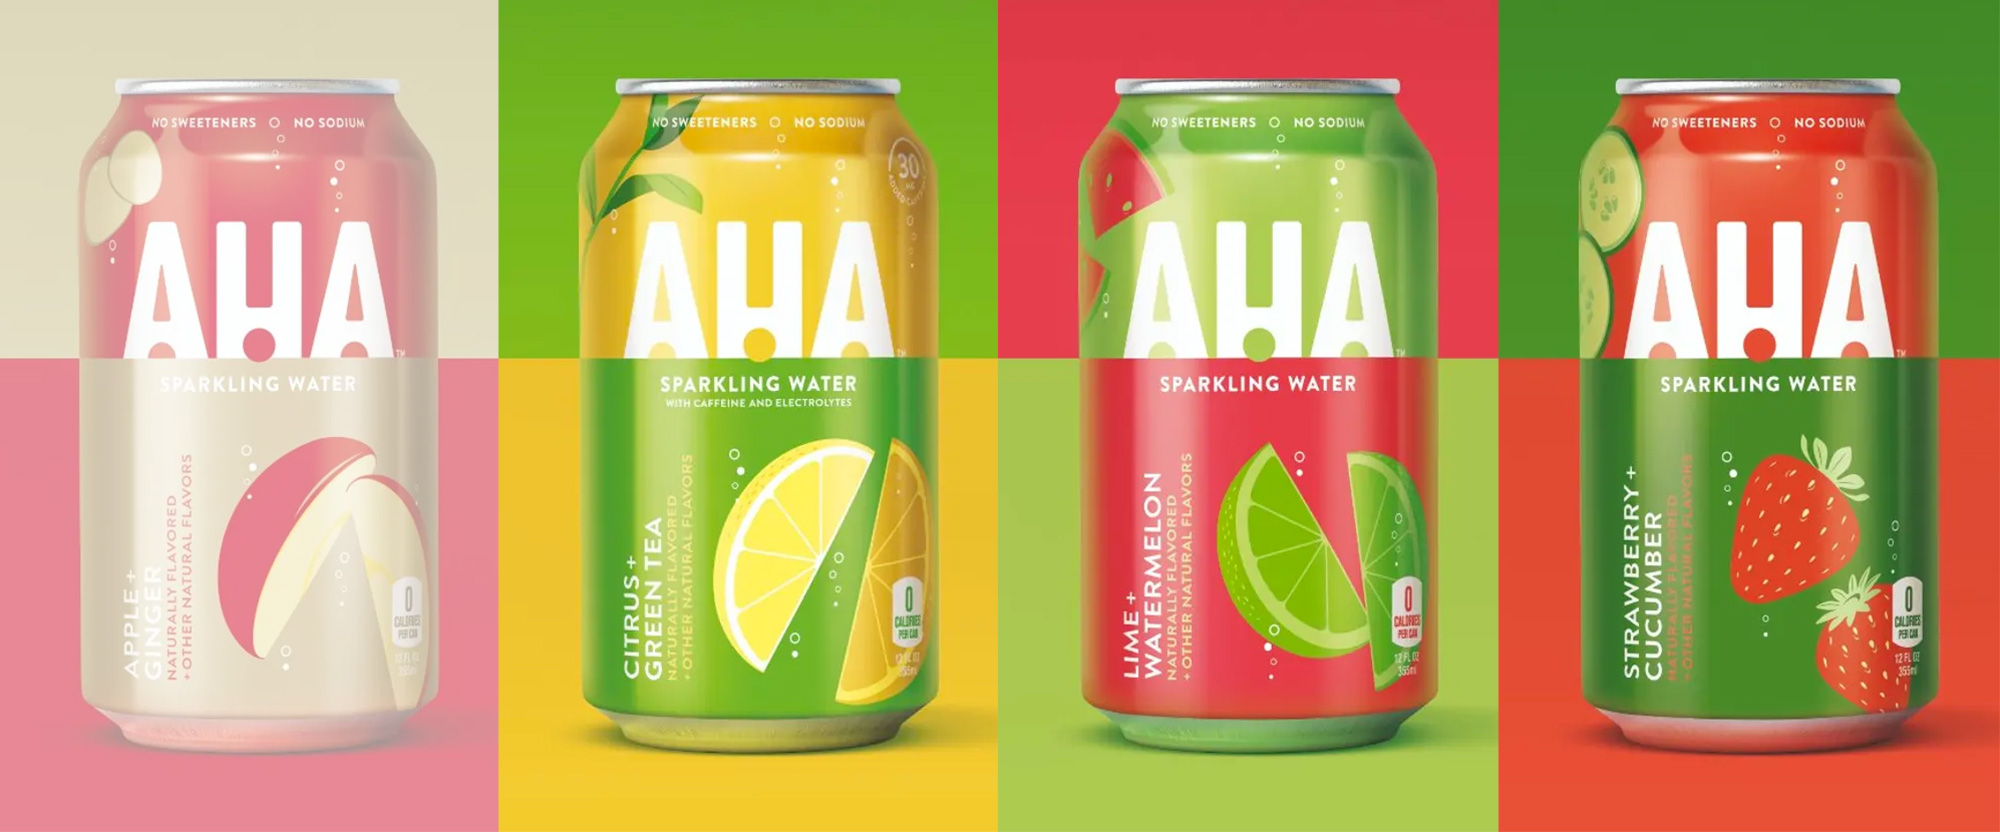 New Logo and Packaging for AHA by Taxi Studio